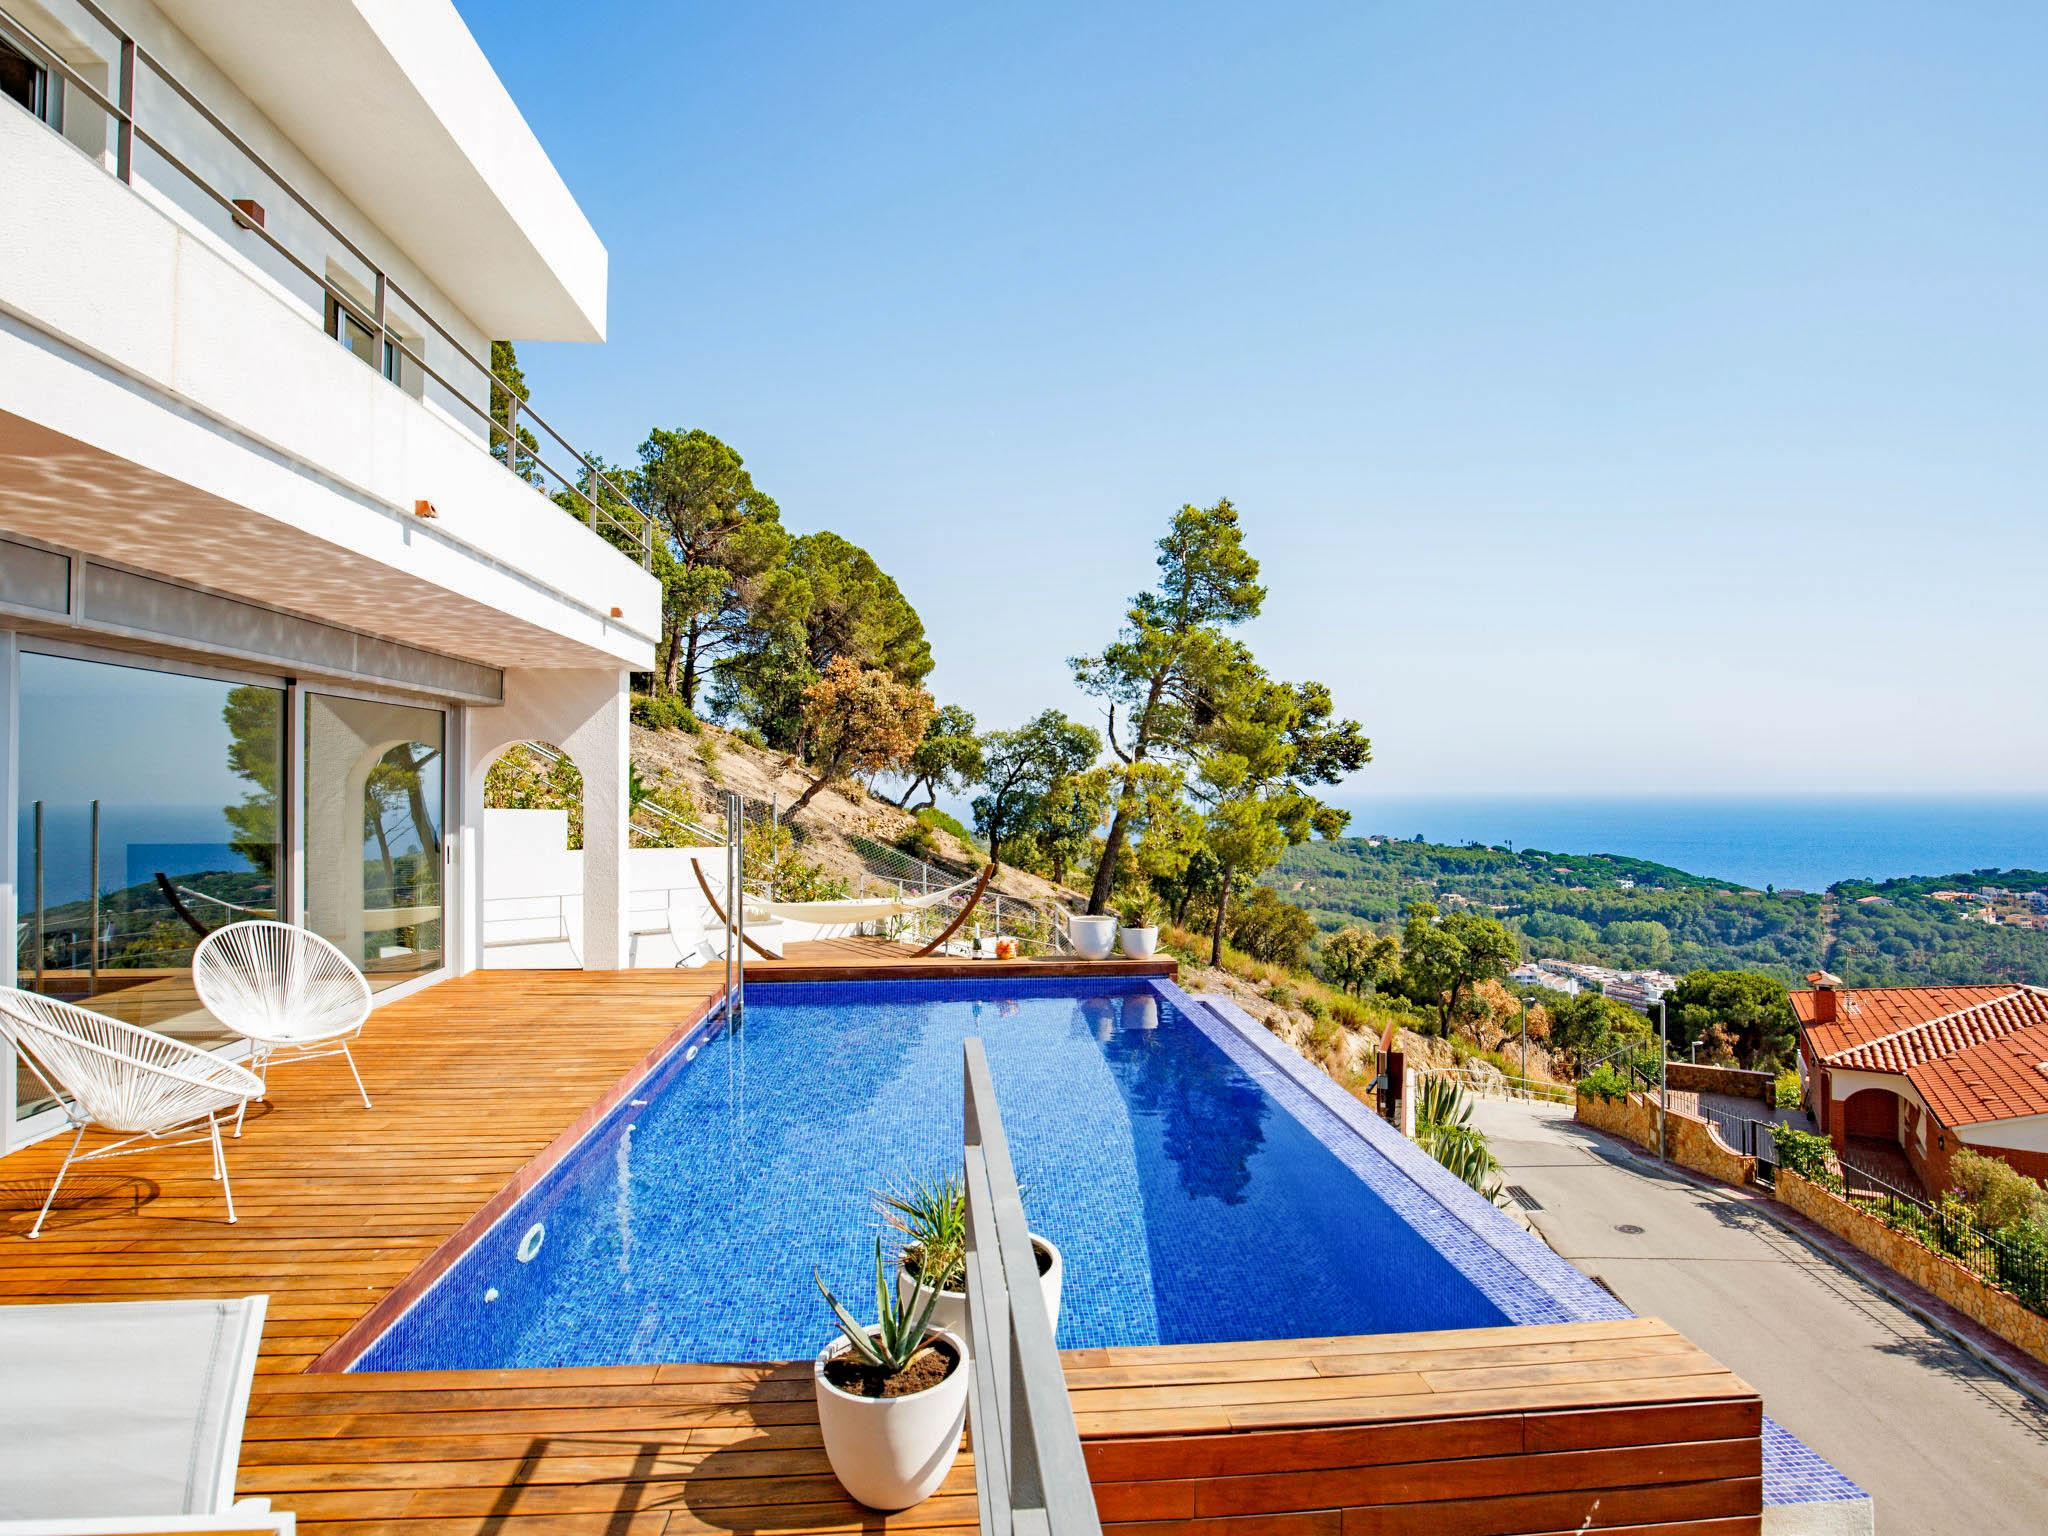 Property Image 1 - Delightful Villa with Pool Overlooking Lloret de Mar